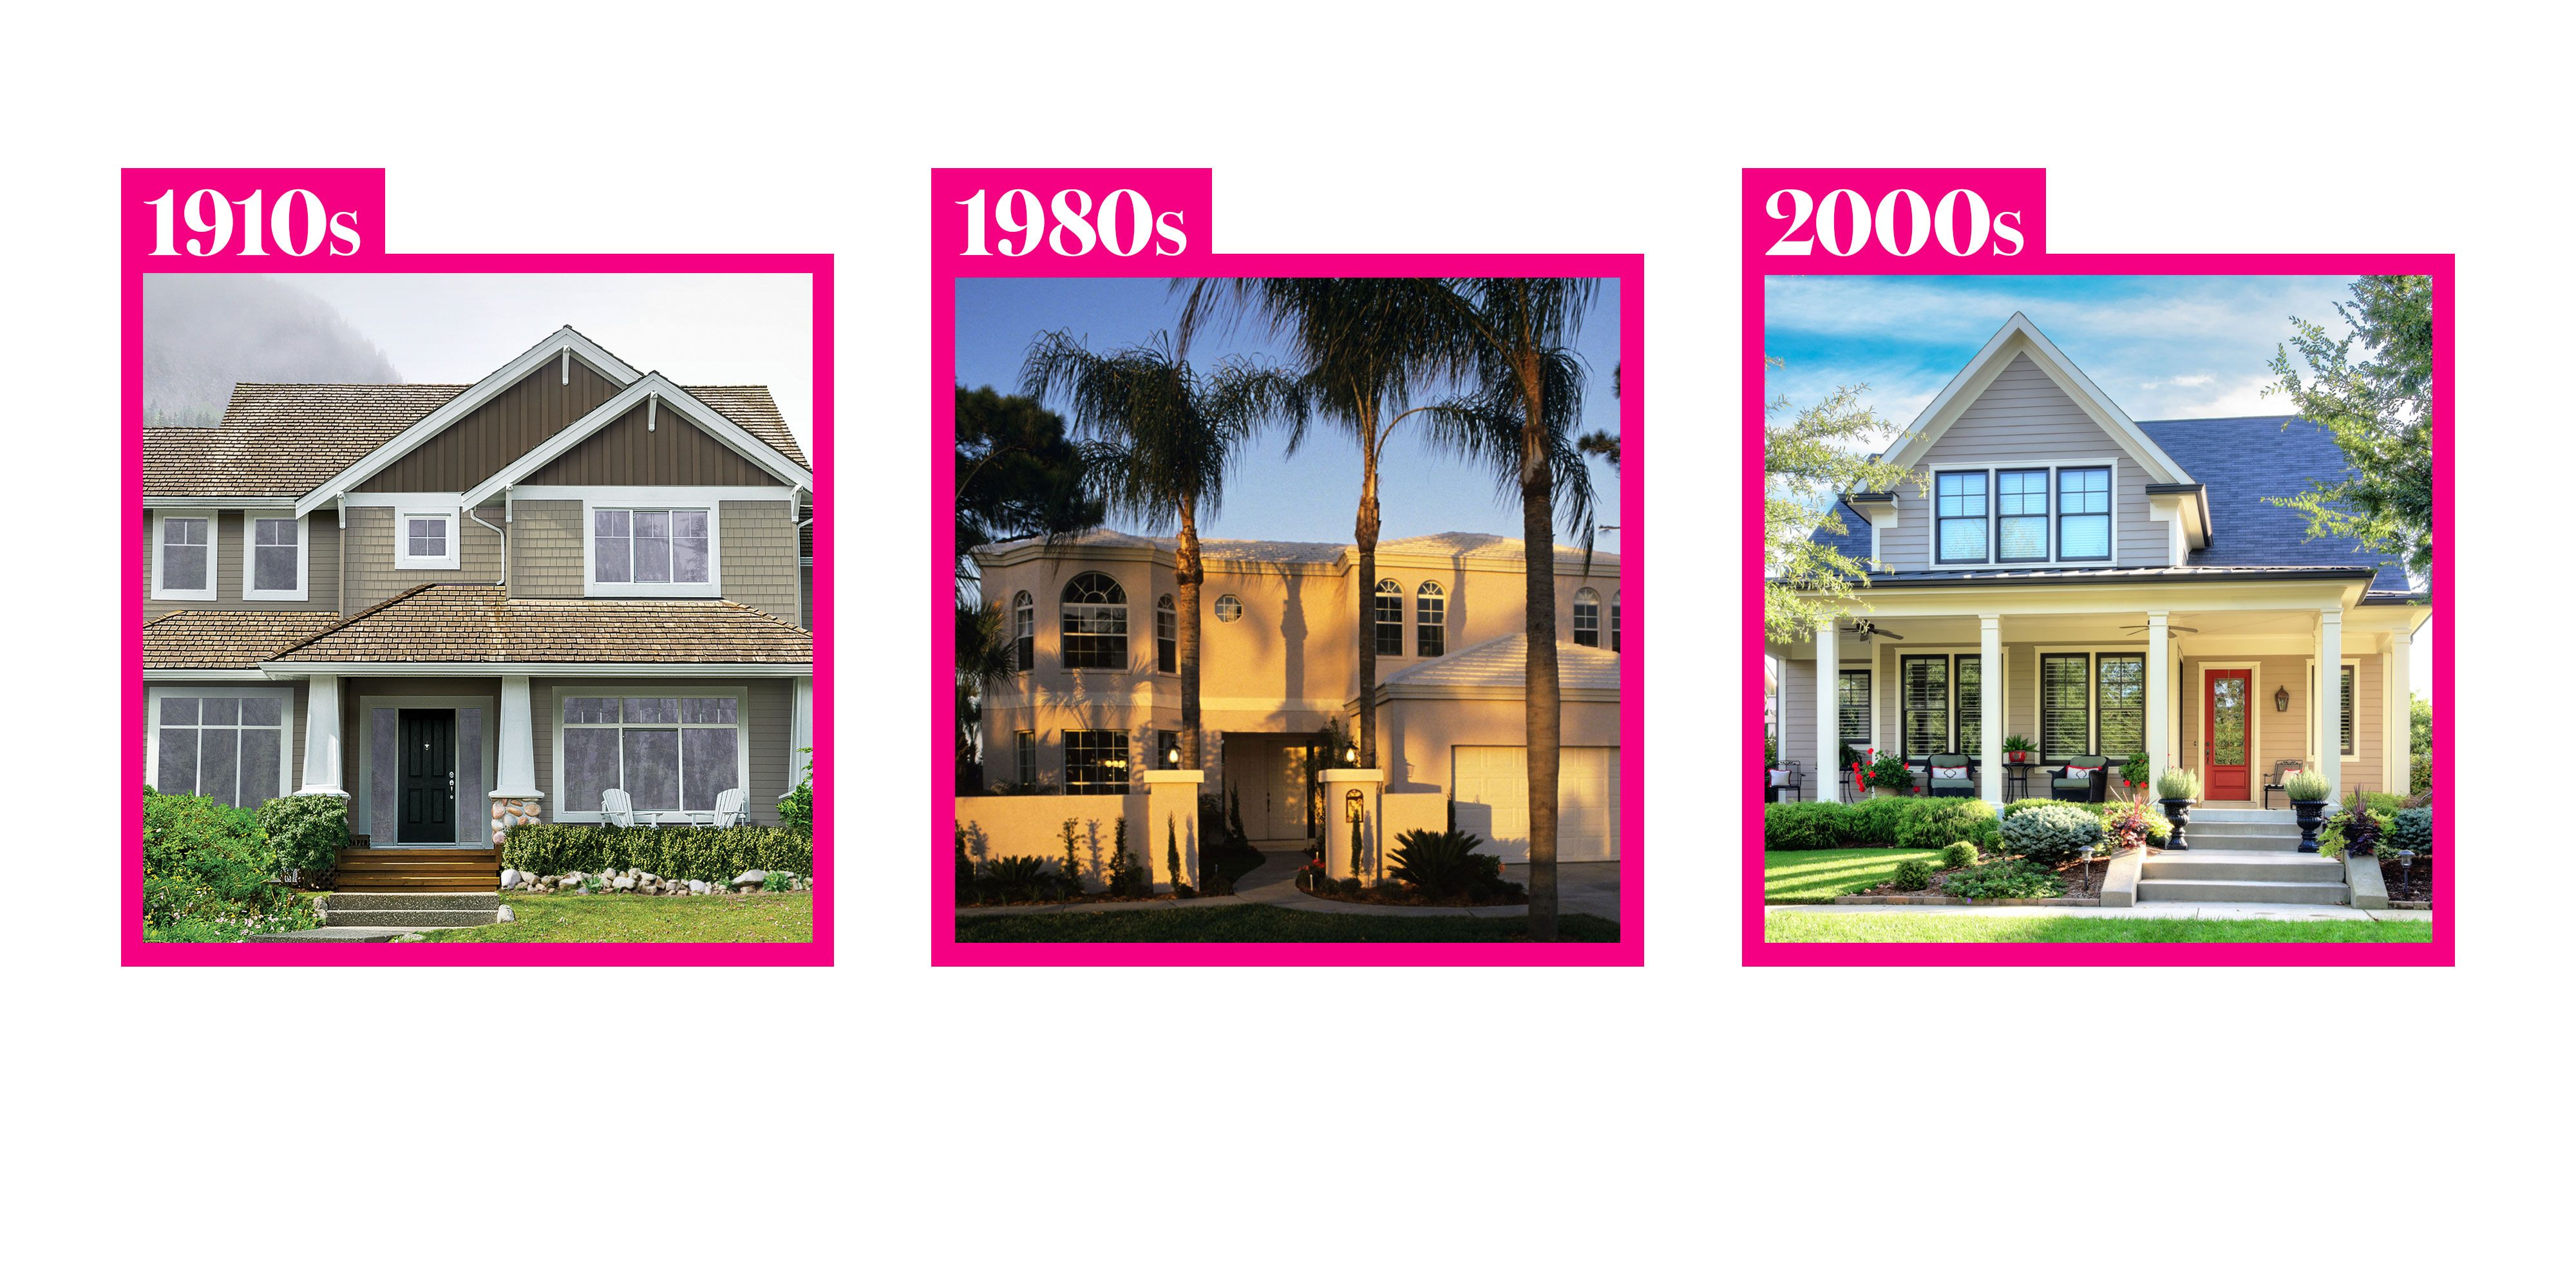 Home Exterior Trends - How Home Exterior Trends Have Evolved Through